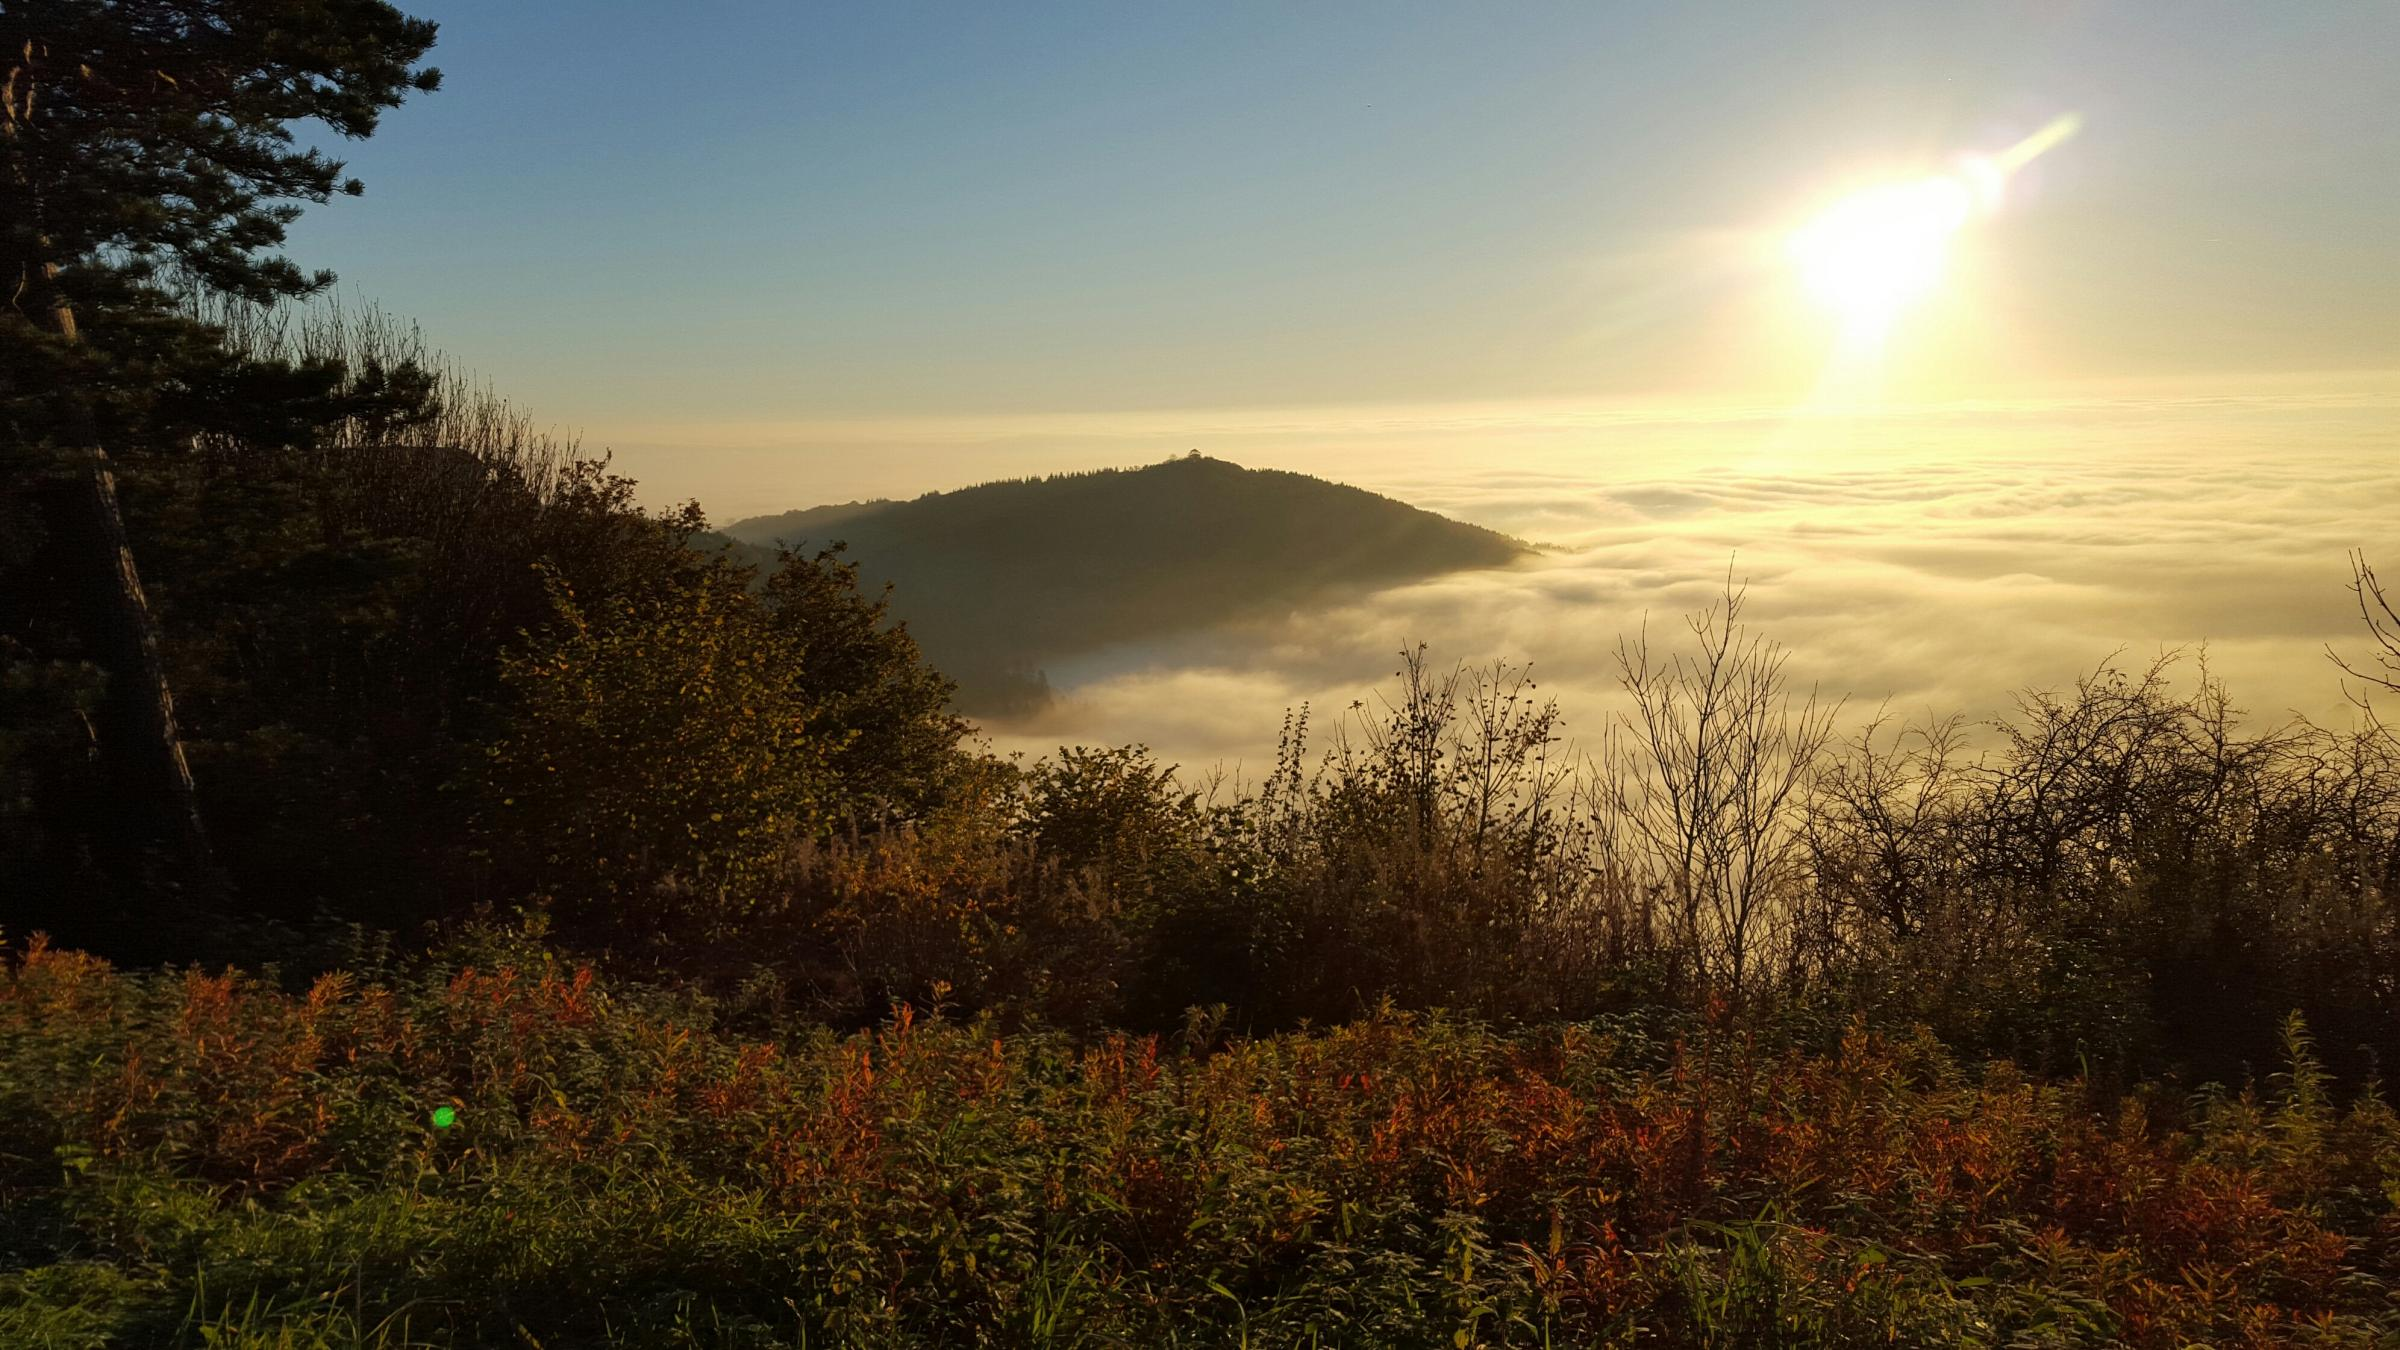 READER'S VIEW: John Carrington, of Sowerby, Thirsk, took this view from the top of Sutton Bank